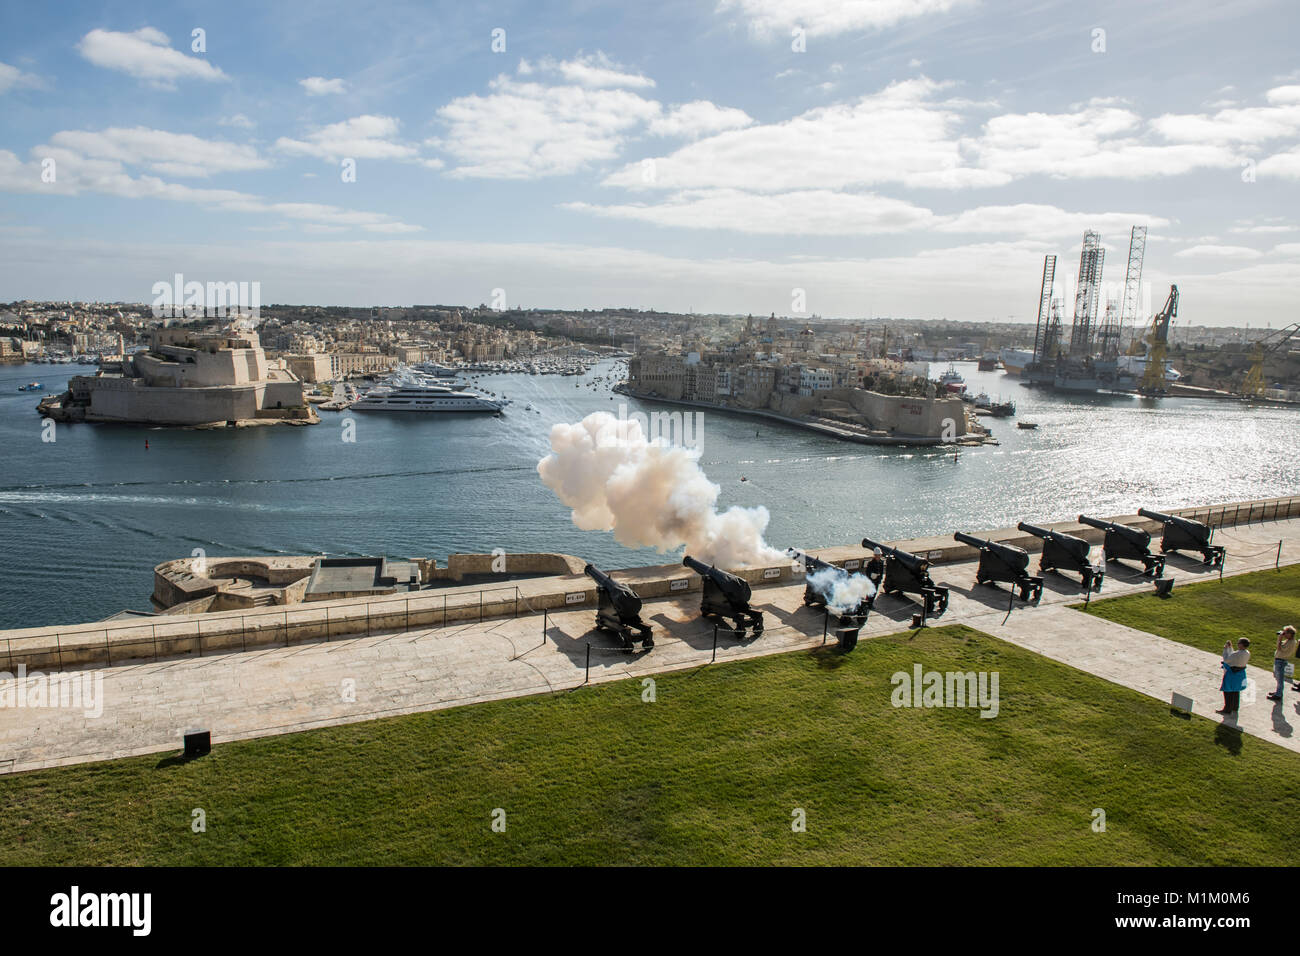 Valletta, Malta. 19th Jan, 2018. Cannons shoot at 12 o'clock during noon at the harbour in Valletta, Malta, - Stock Image